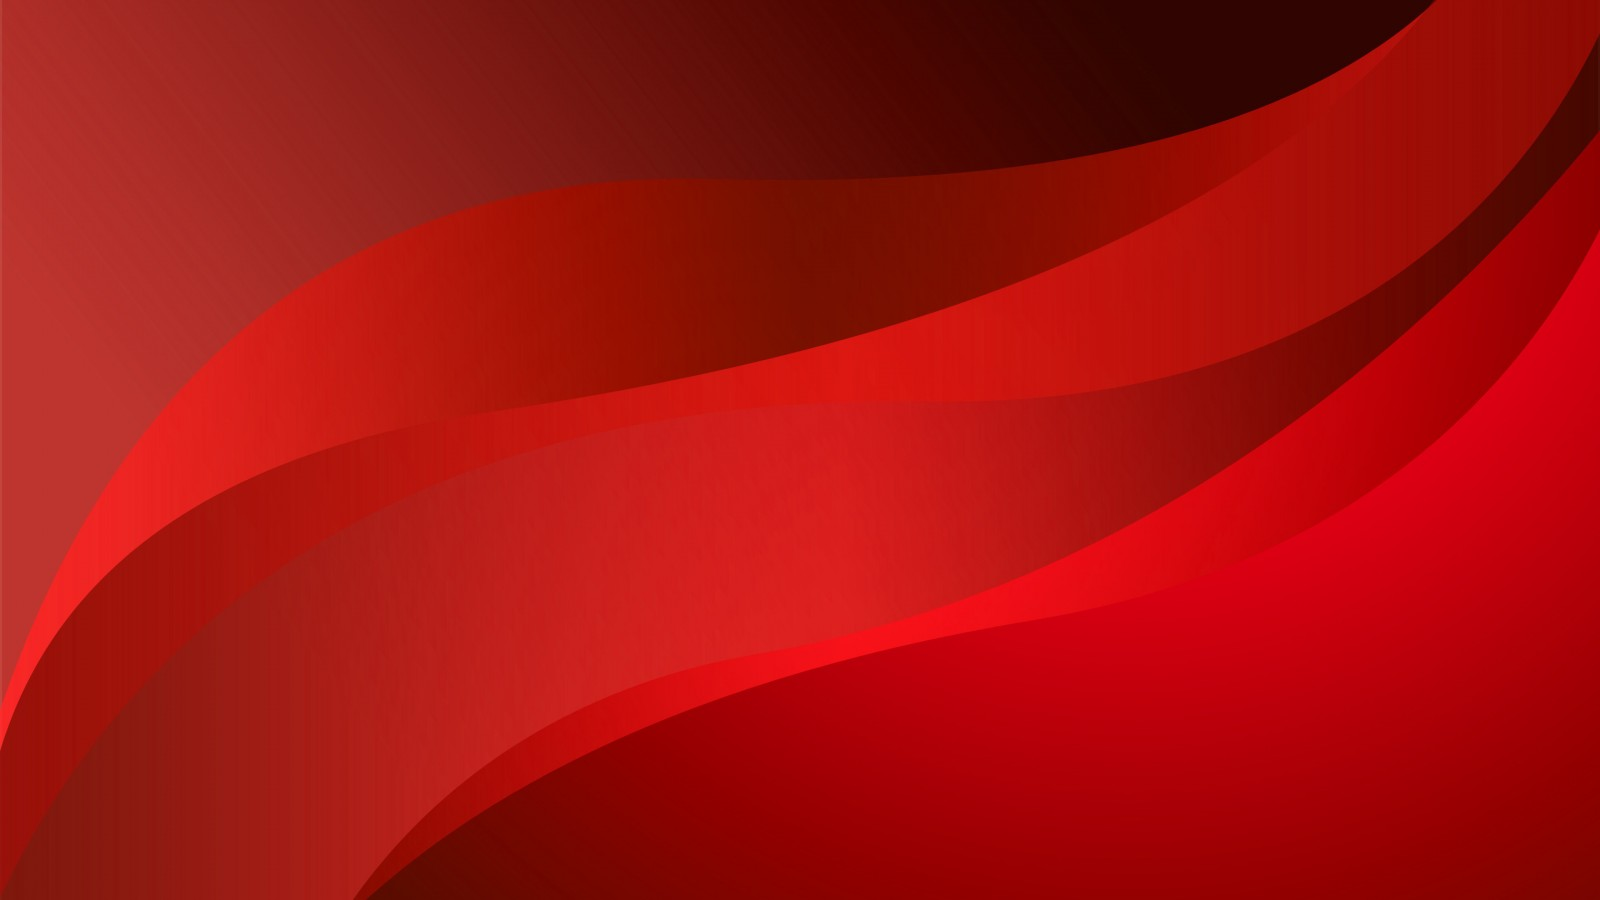 Galaxy Wallpaper Iphone With Quotes Red Curves Abstract Wallpaper Hd Wallpapers Hd